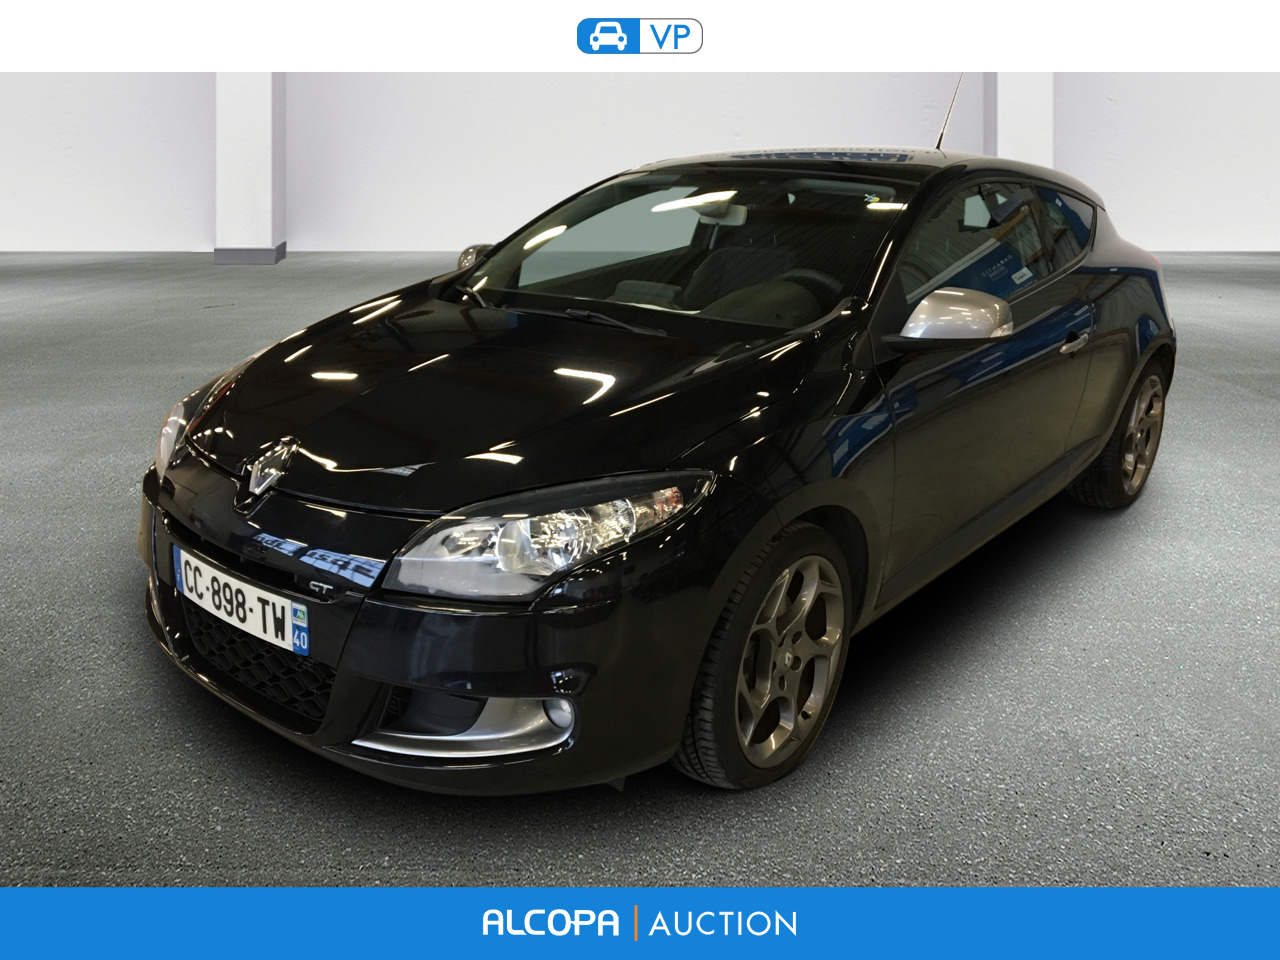 renault megane megane coupe 2 0 dci160 fap gt rennes alcopa auction. Black Bedroom Furniture Sets. Home Design Ideas